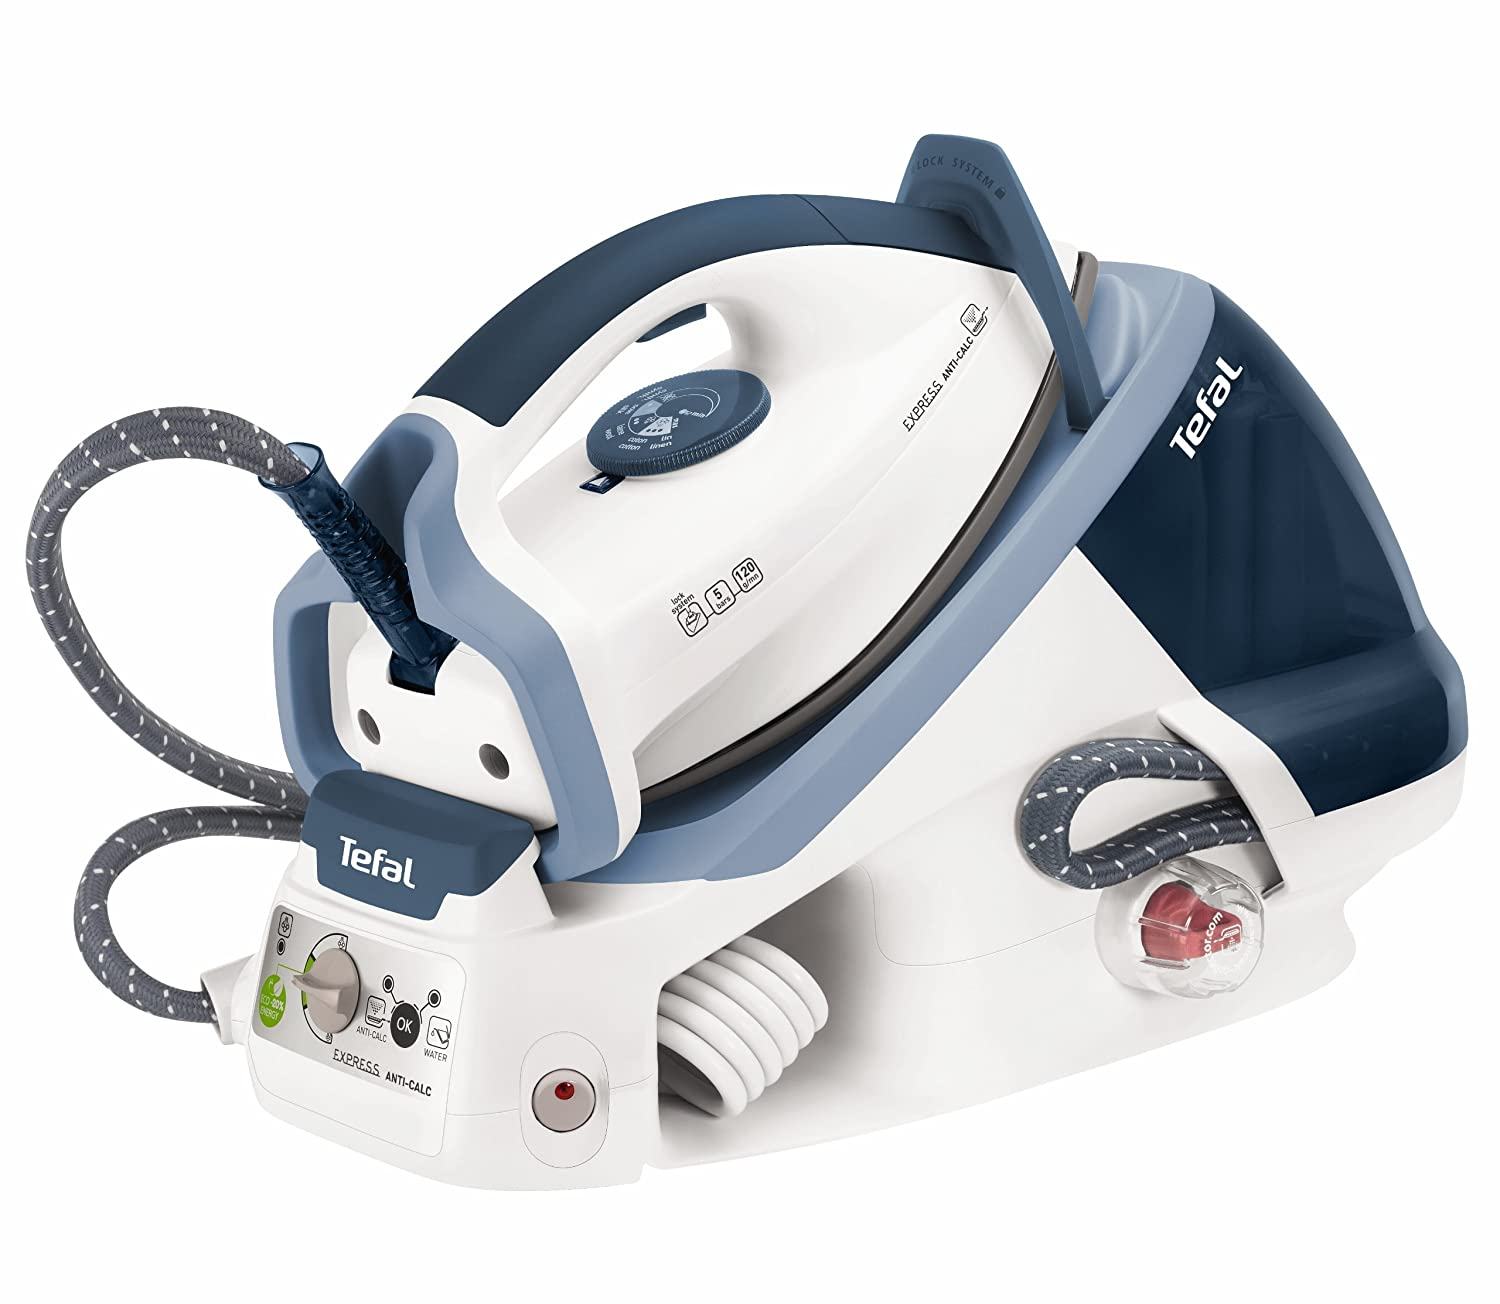 Tefal Express High Pressure Steam Generator Iron GV7450 Blue